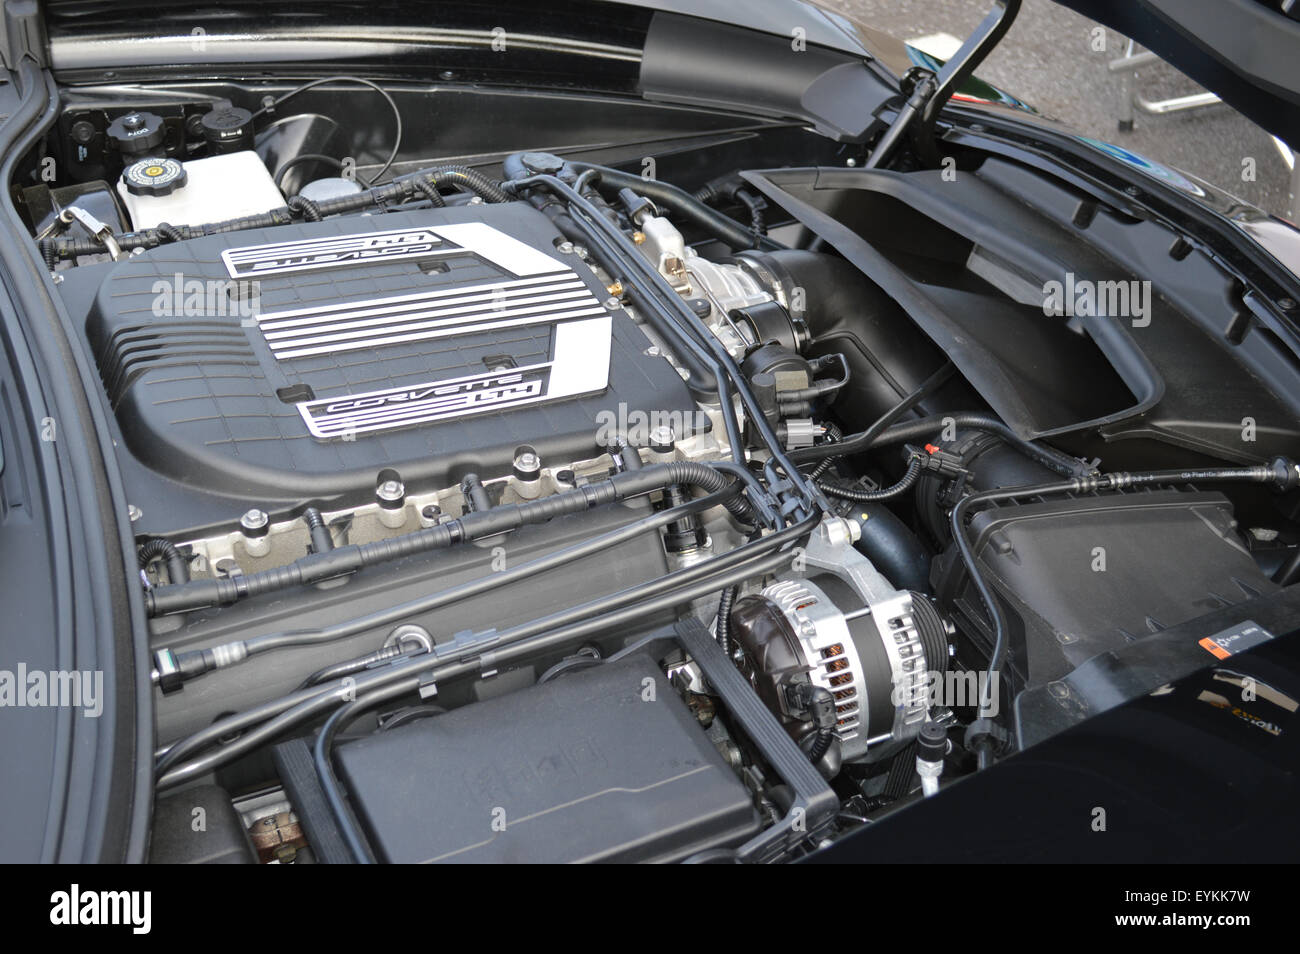 Lt4 Engine Stock Photos & Lt4 Engine Stock Images - Alamy